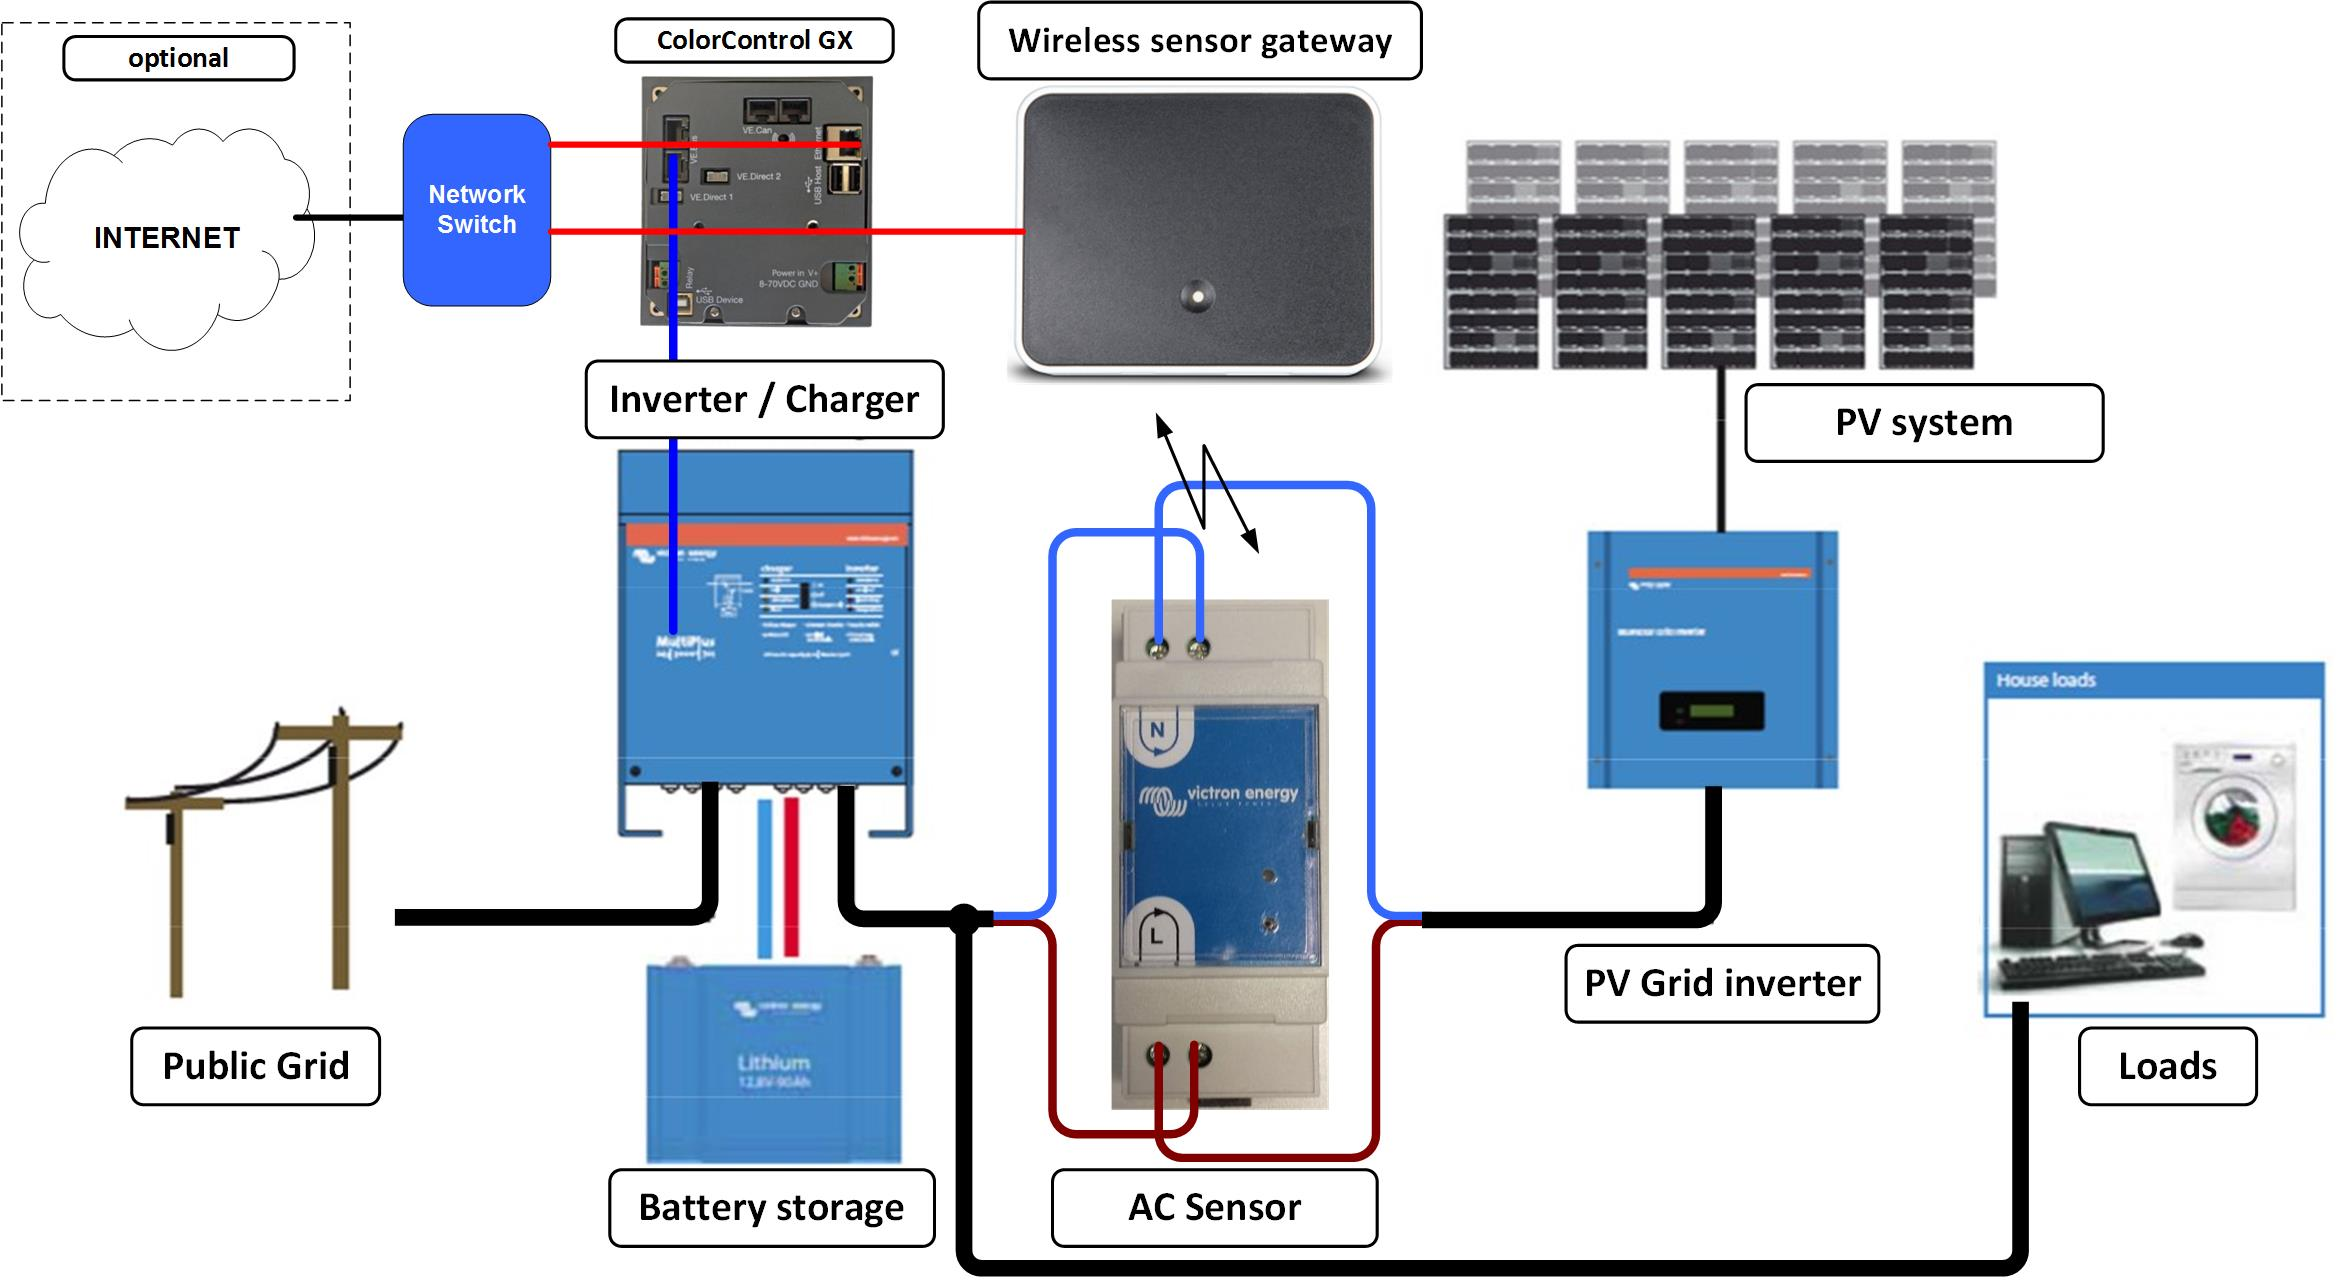 ccgx quby_gateway_schema?w=850&tok=8bbaf9 wireless ac sensor manual [victron energy] victron multiplus wiring diagram at bayanpartner.co